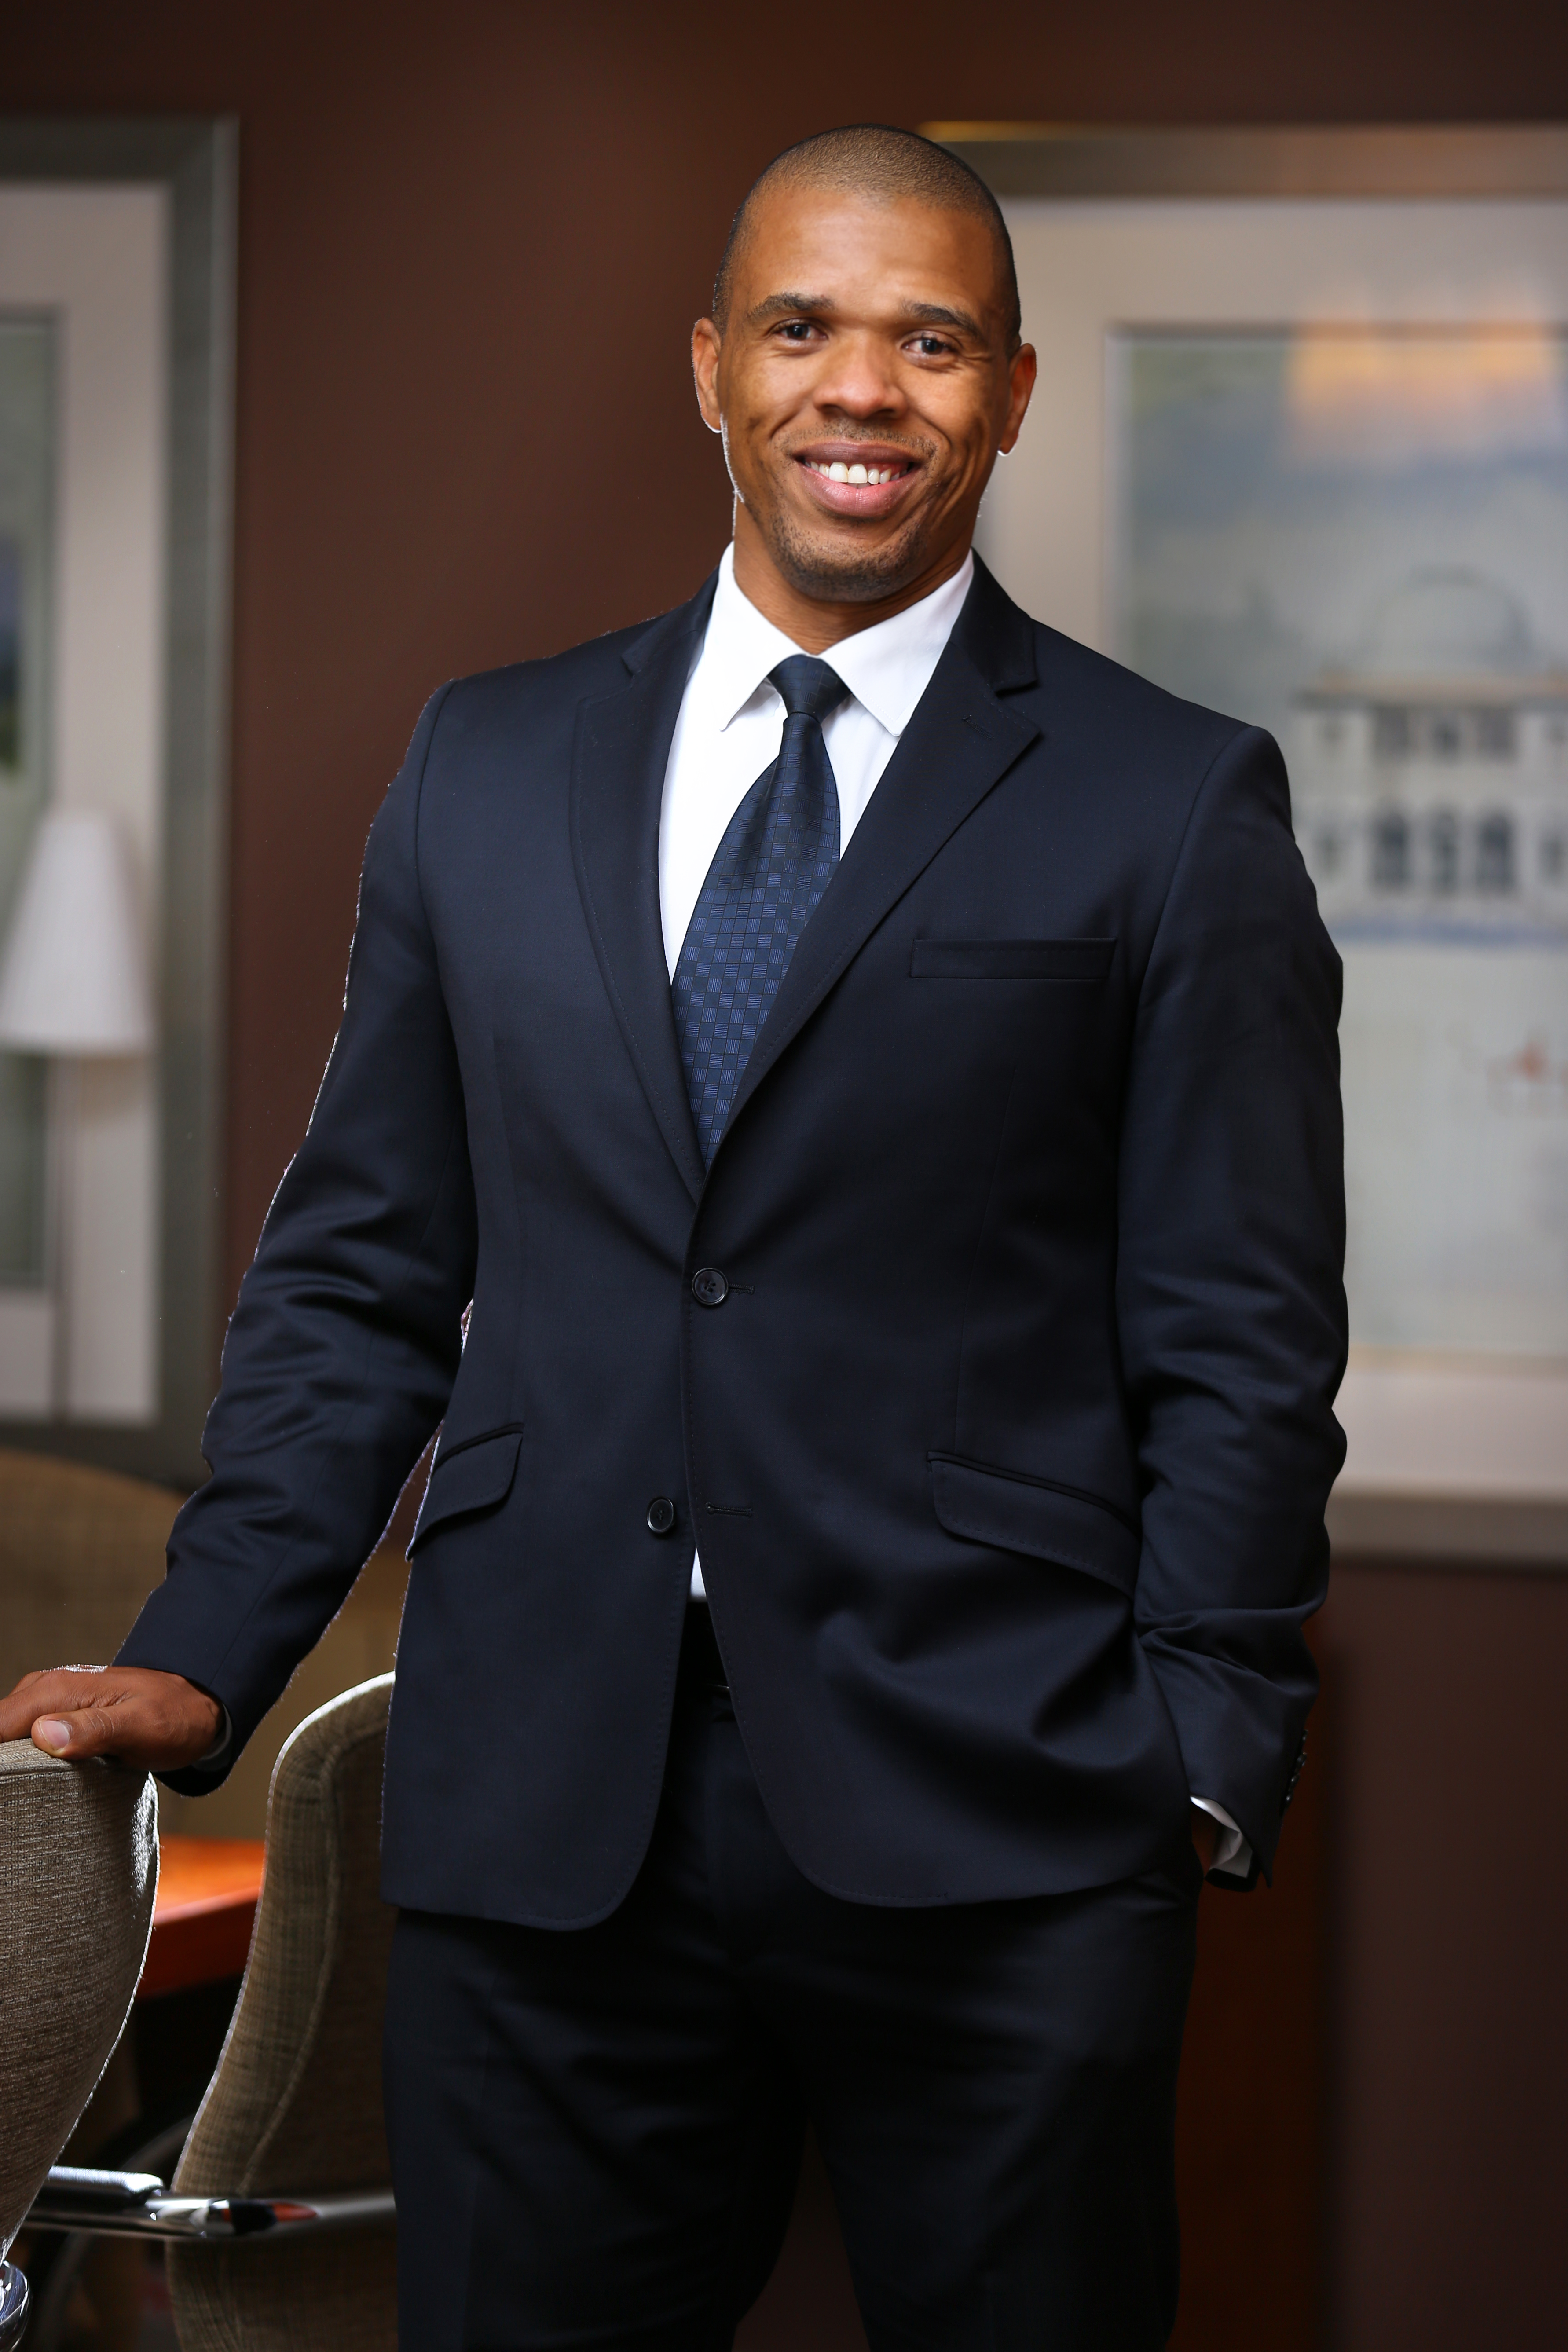 Corporate portraiture, suit, african